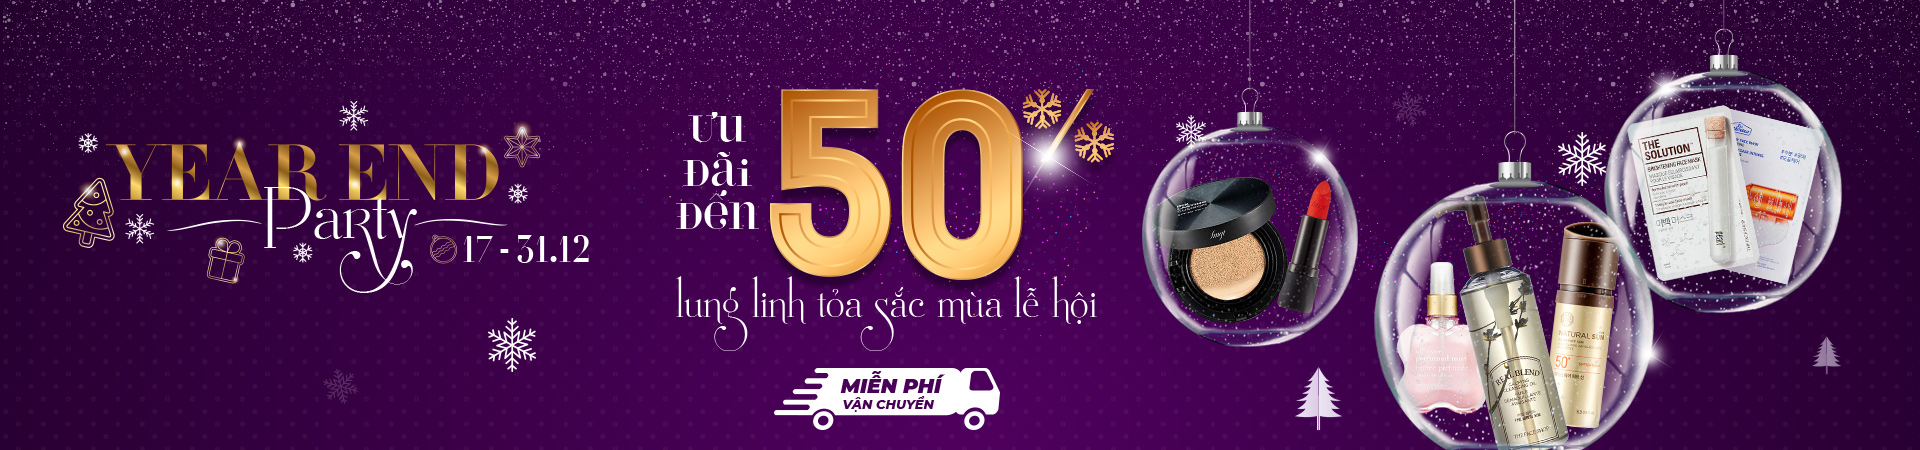 YEAR END PARTY - NHÓM GIẢM 20%